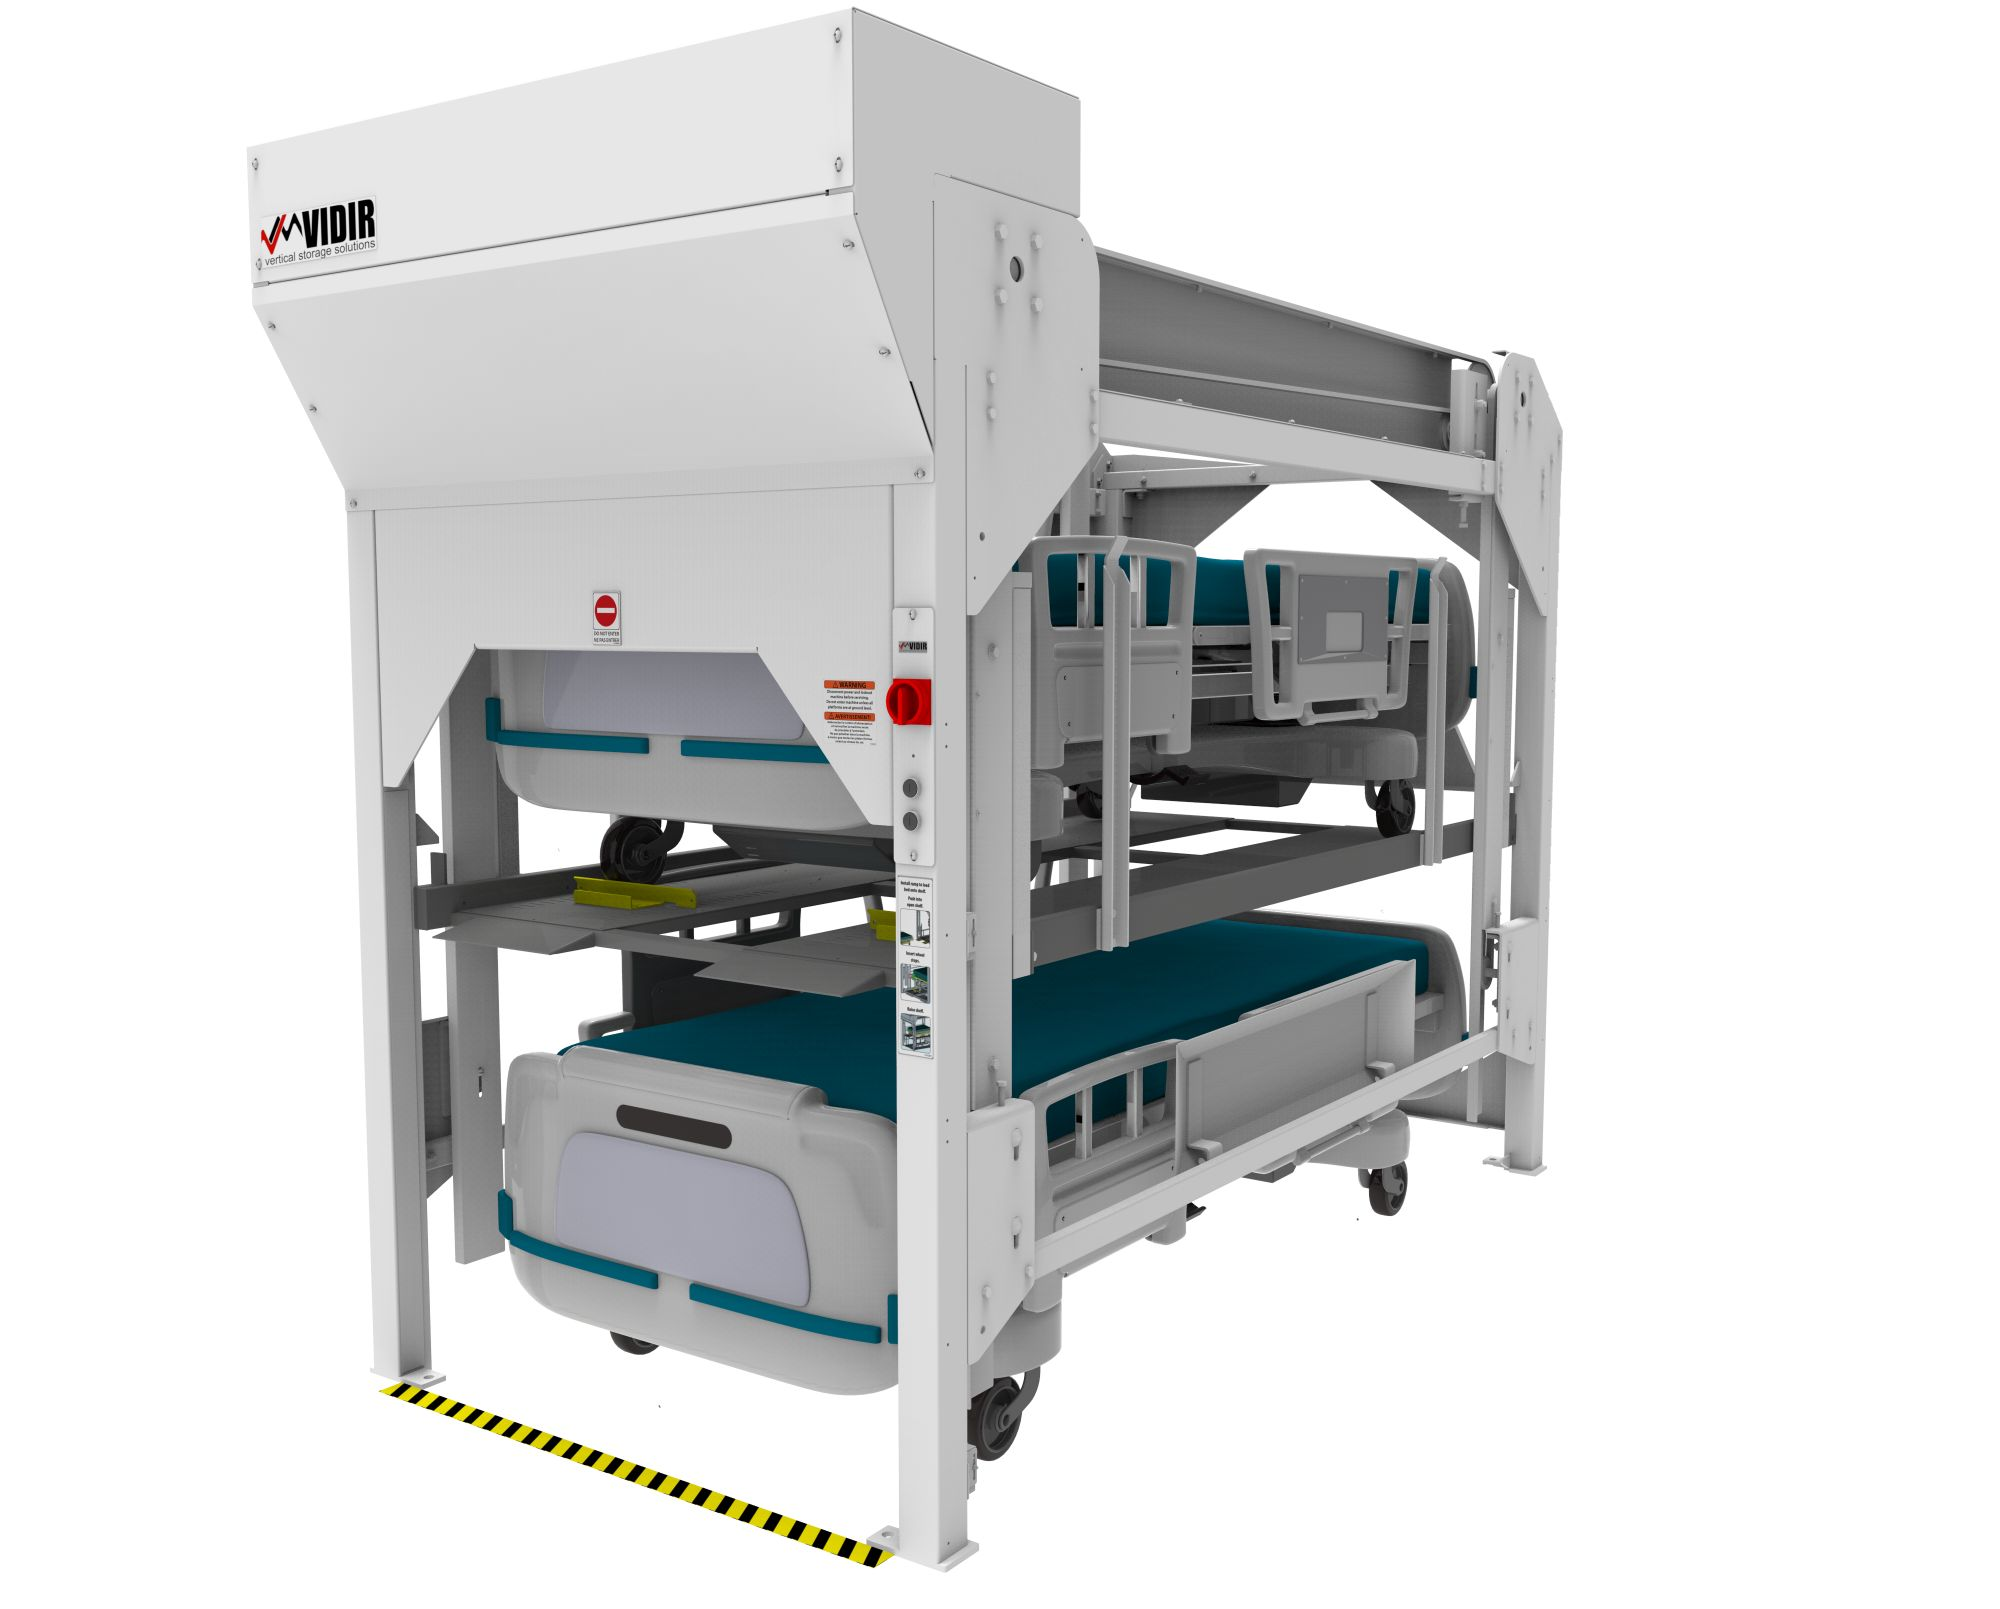 Vidir Bedlift X Series-compressed